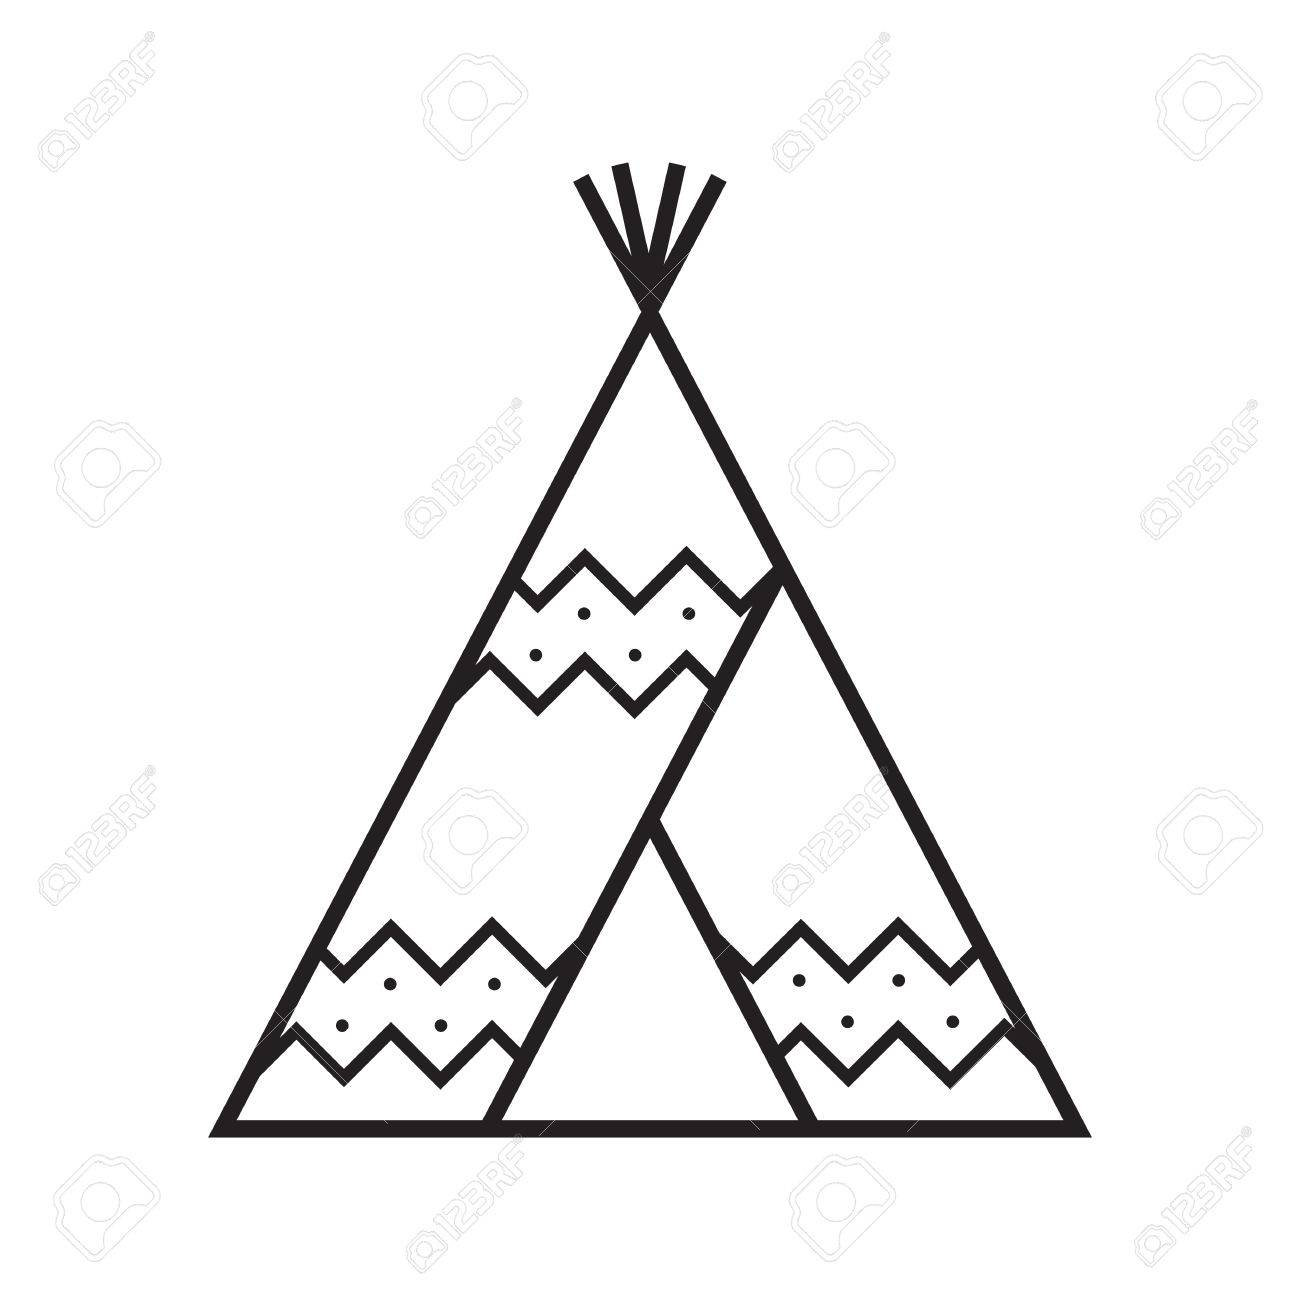 Camping Tent Vector Linear Icon. Teepee Symbol Royalty Free Cliparts ...